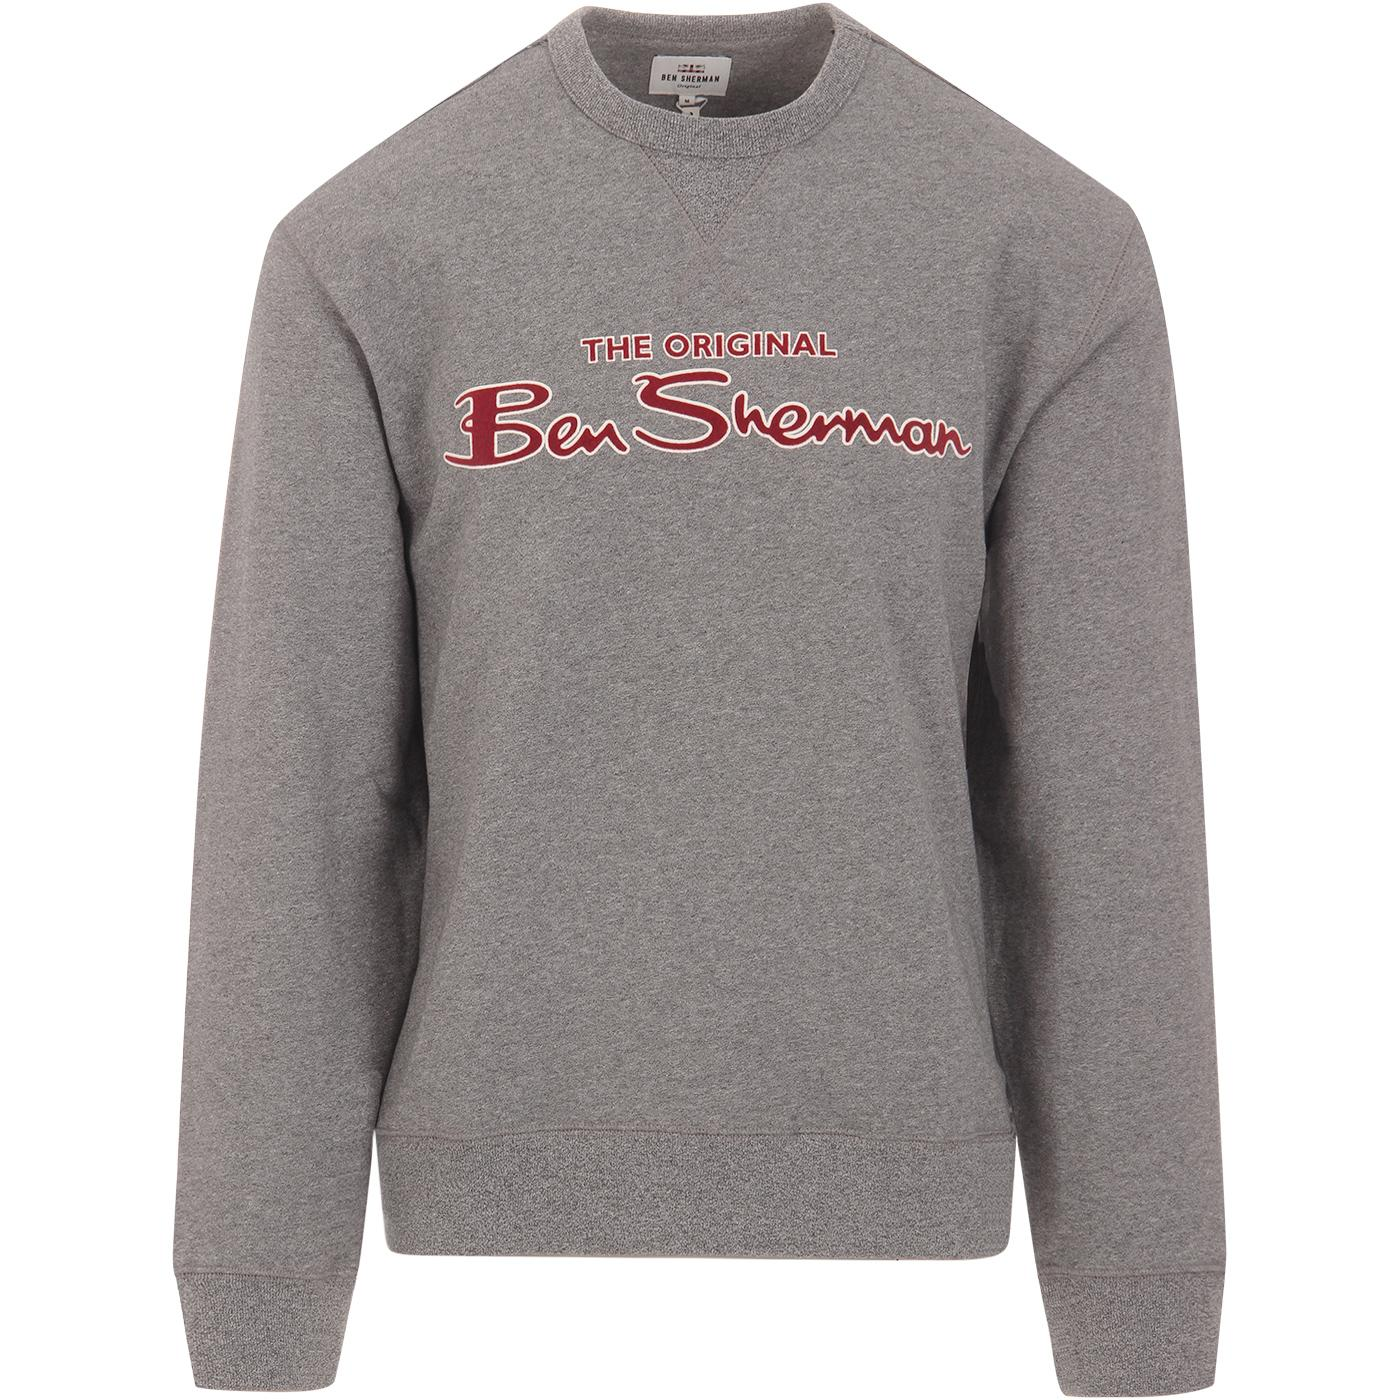 BEN SHERMAN Archive Flock Print Retro Sweatshirt A